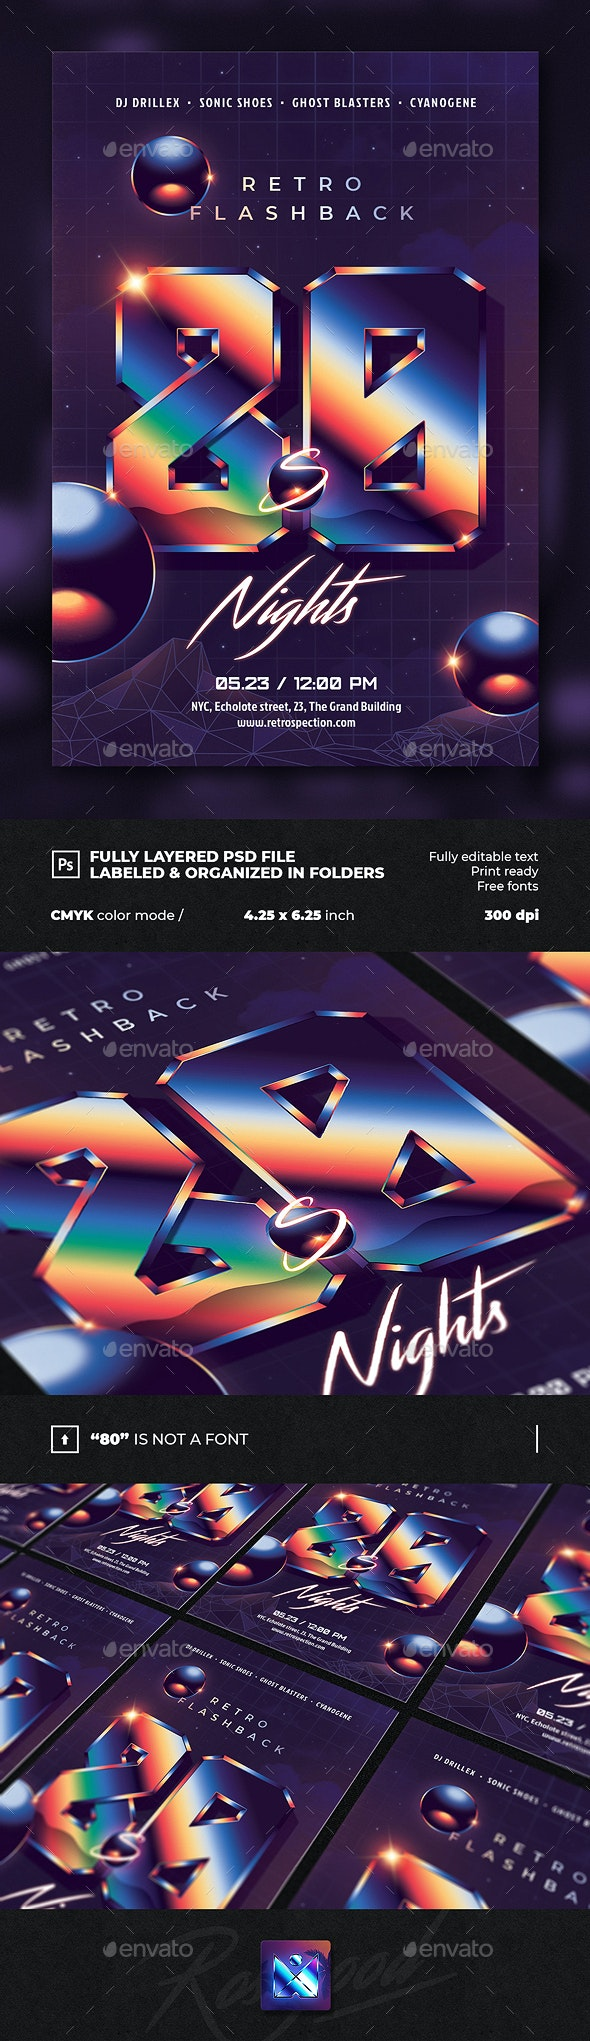 80`s Night Retro Flashback Party Flyer Template - Events Flyers